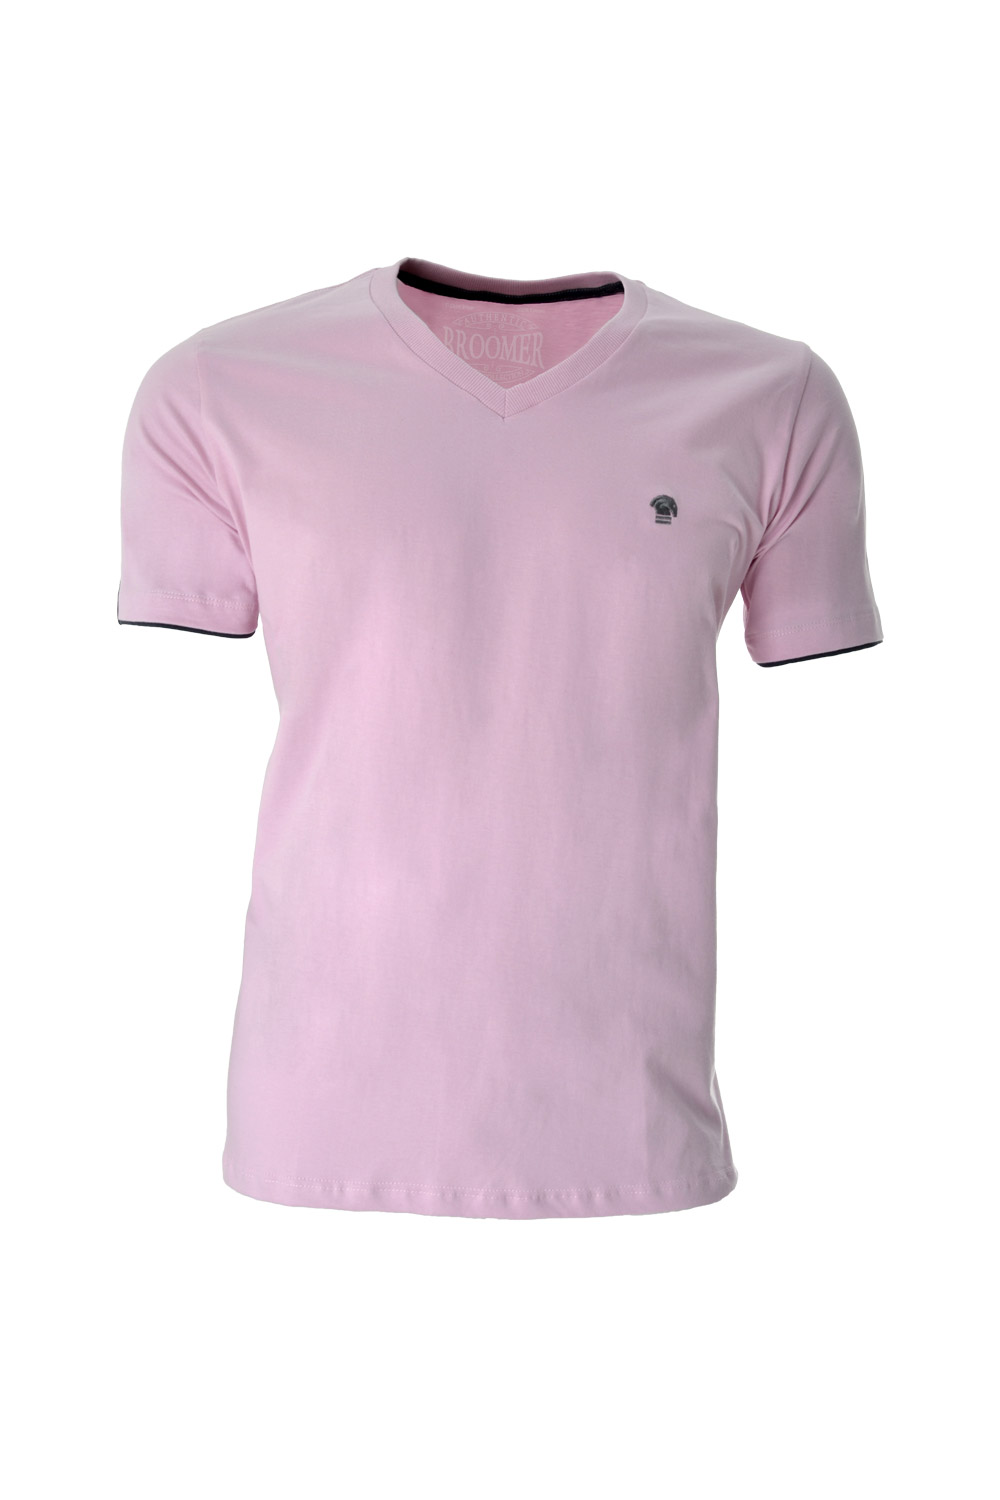 CAMISETA MC BLUES SUPER SLIM ALGODAO GOLA V LISO ROSA CLARO